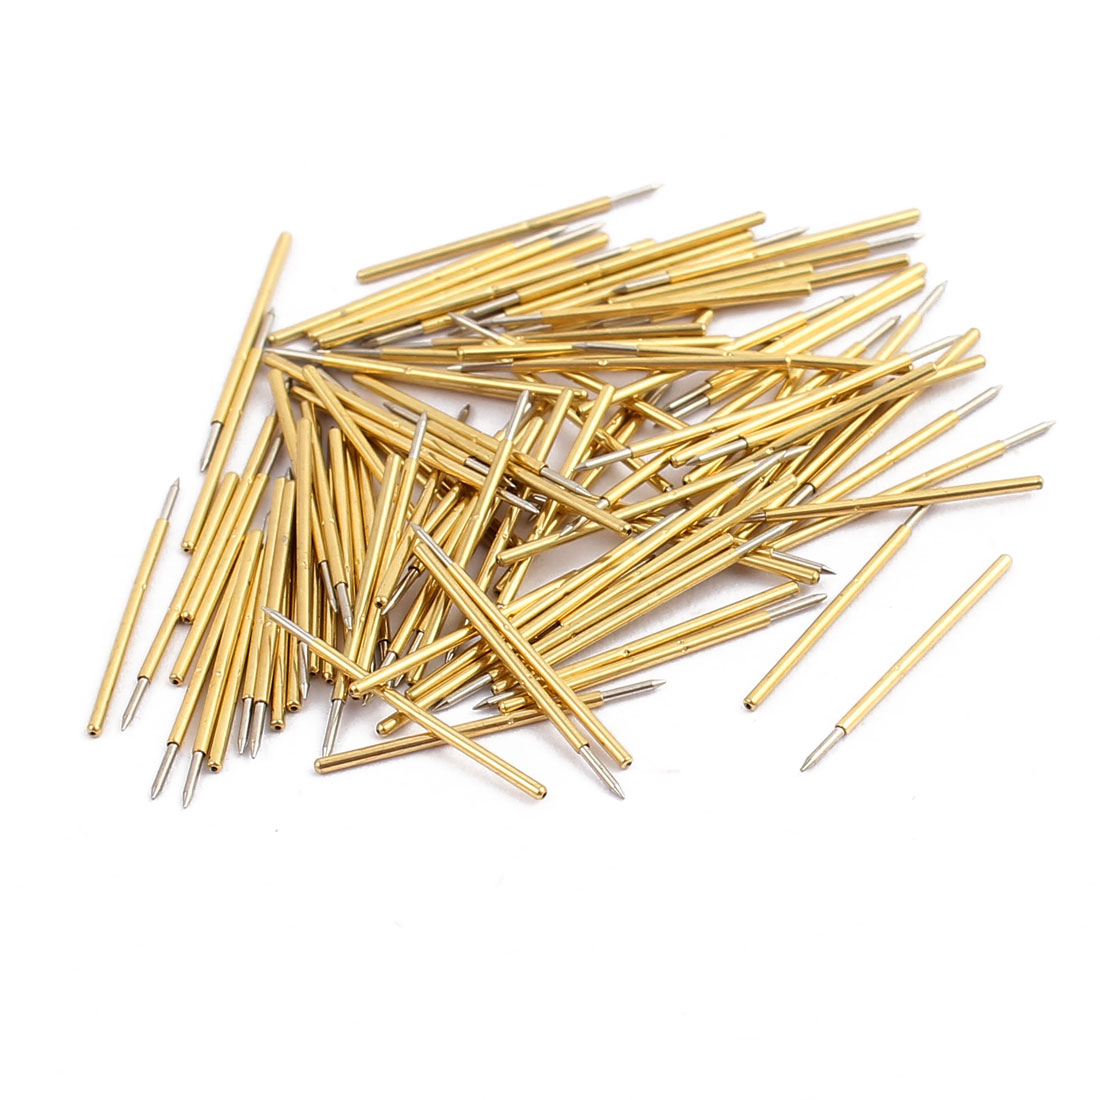 100pcs P50-B1 0.68mm Dia 15.7mm Length Metal Spring Pressure Test Probe Needle